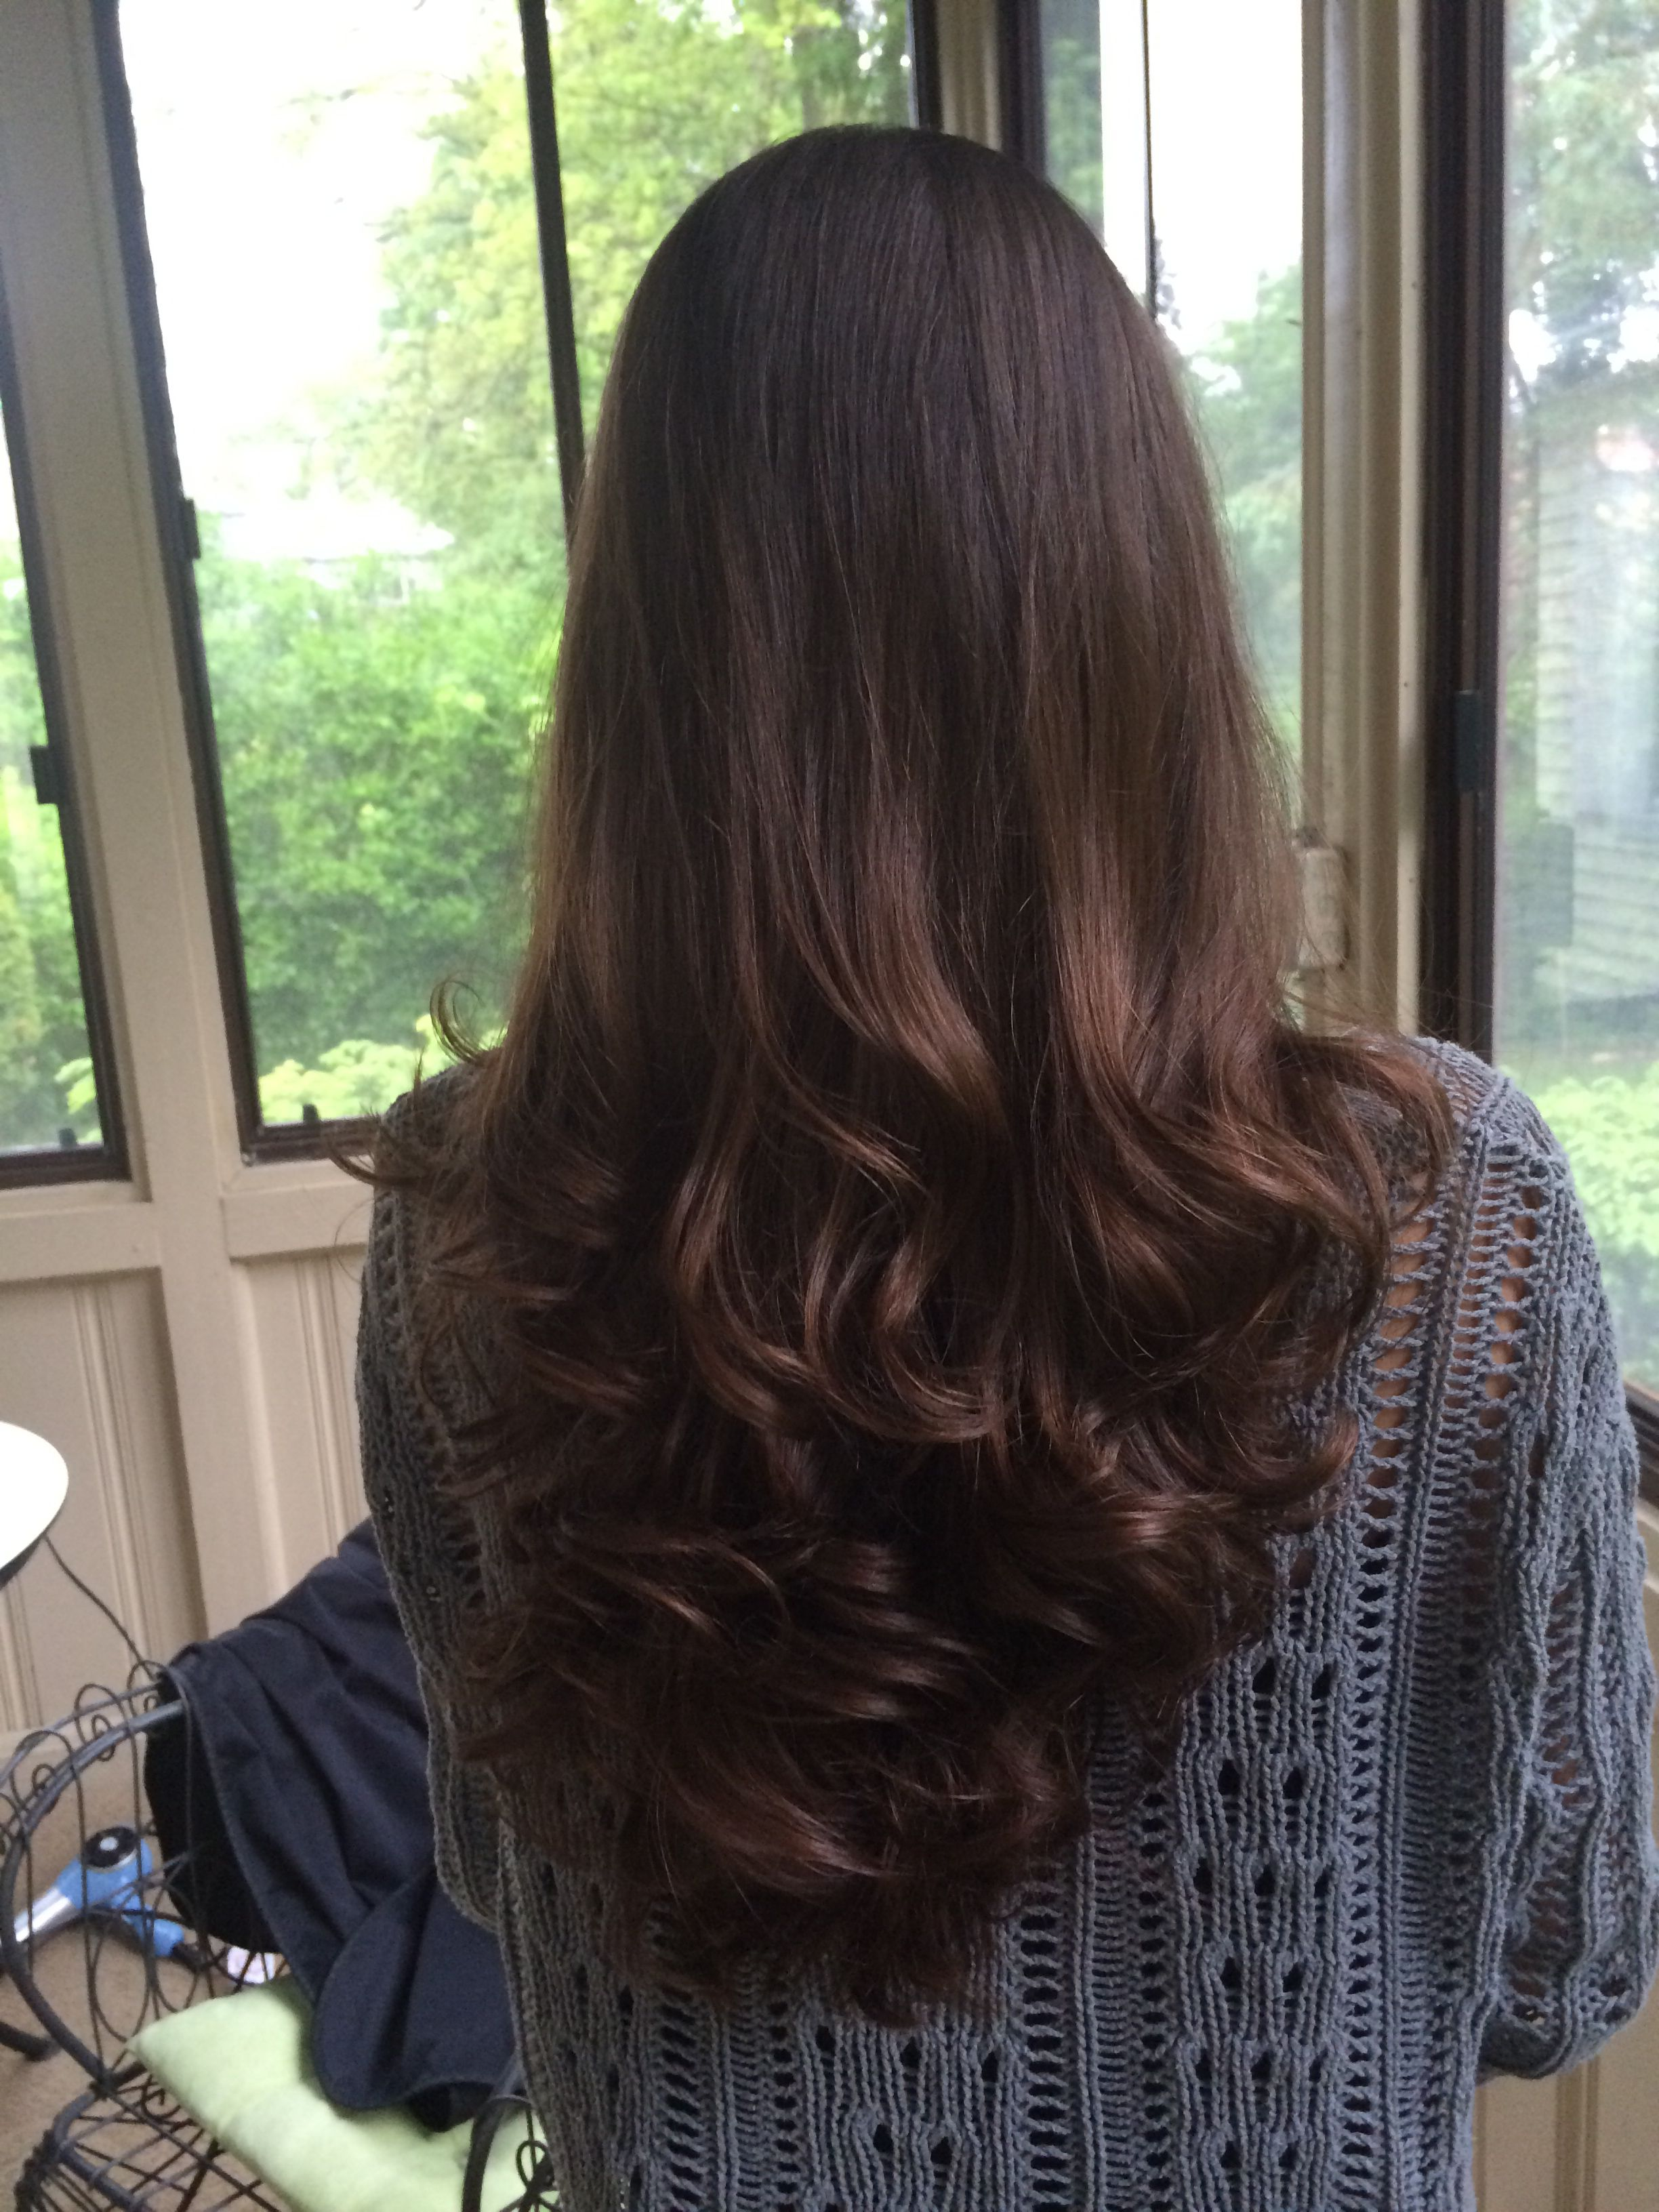 Long Layered Victoria Secret V Shape Haircut With Curls Wish My Hair Would Look Like That Haircuts For Long Hair Long Layered Hair Short Hair Styles Easy